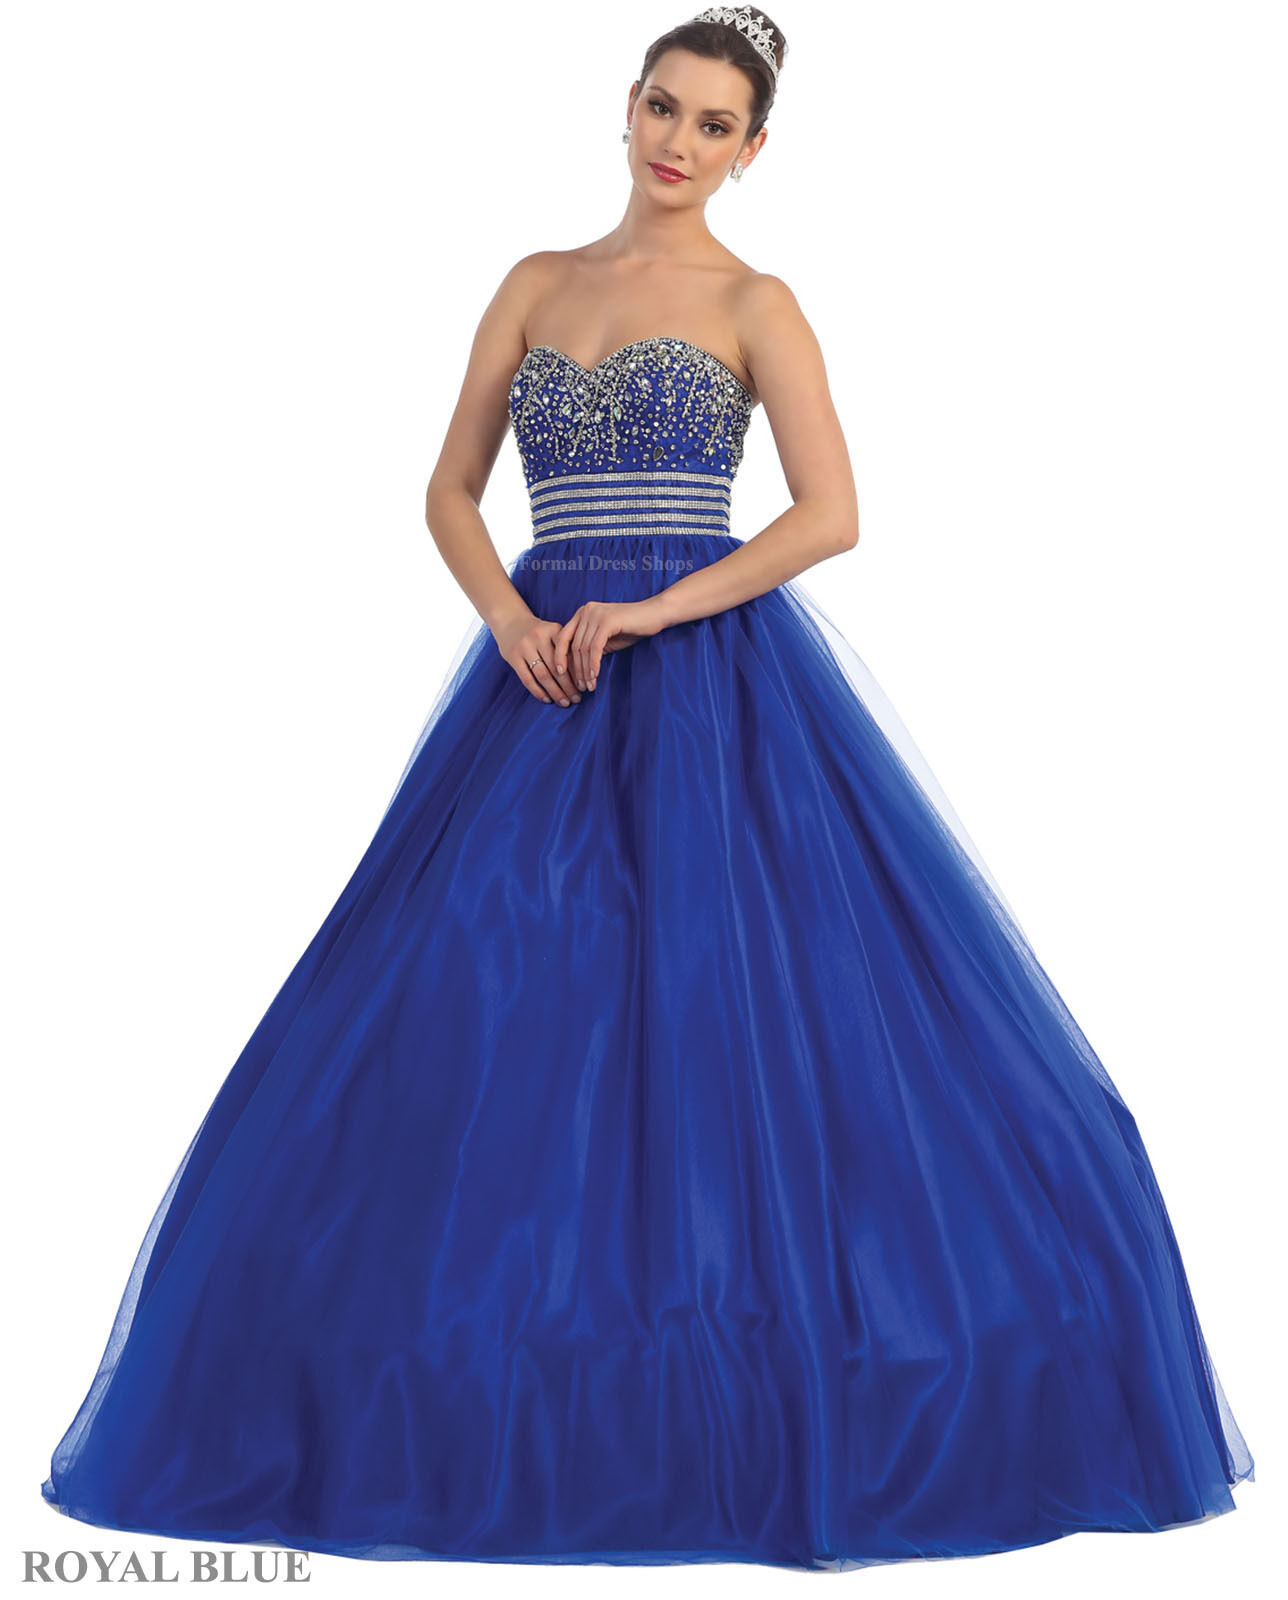 Plus Size Wedding Dresses Cinderella Ball Gown: SALE ! QUINCEAÑERA MASQUERADE BALL ROOM GOWN PROM SWEET 16